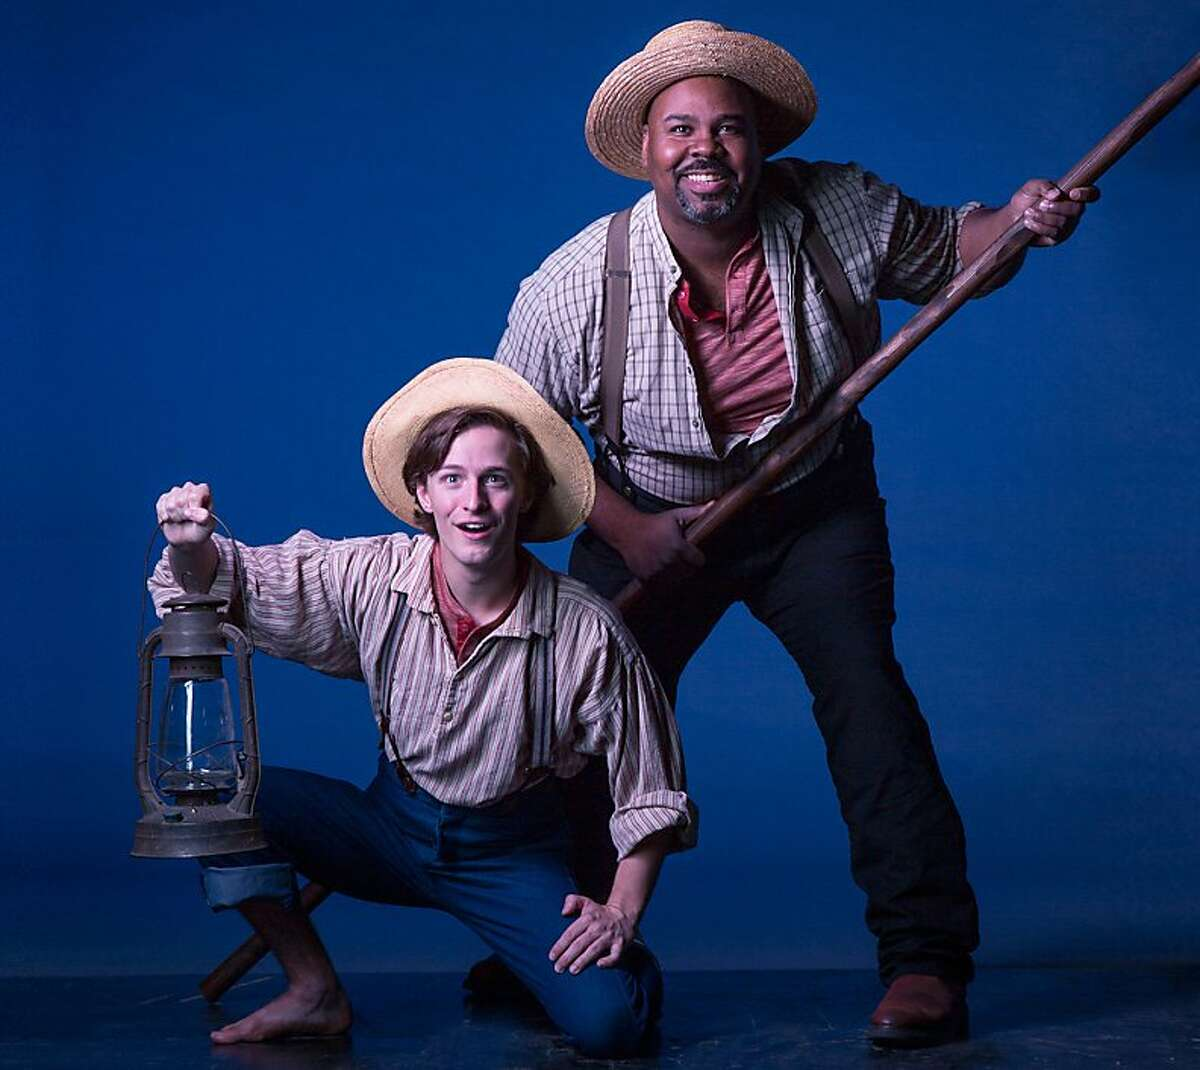 """James Monroe Iglehart 2.jpg Alex Goley (left) and James Monroe Iglehart star in """"Big River,"""" a musical version of """"Huckleberry Finn,"""" a TheatreWorks production running through Dec. 30 at the Lucie Stern Theatre in Palo Alto. Photo credit: Tracy Martin"""